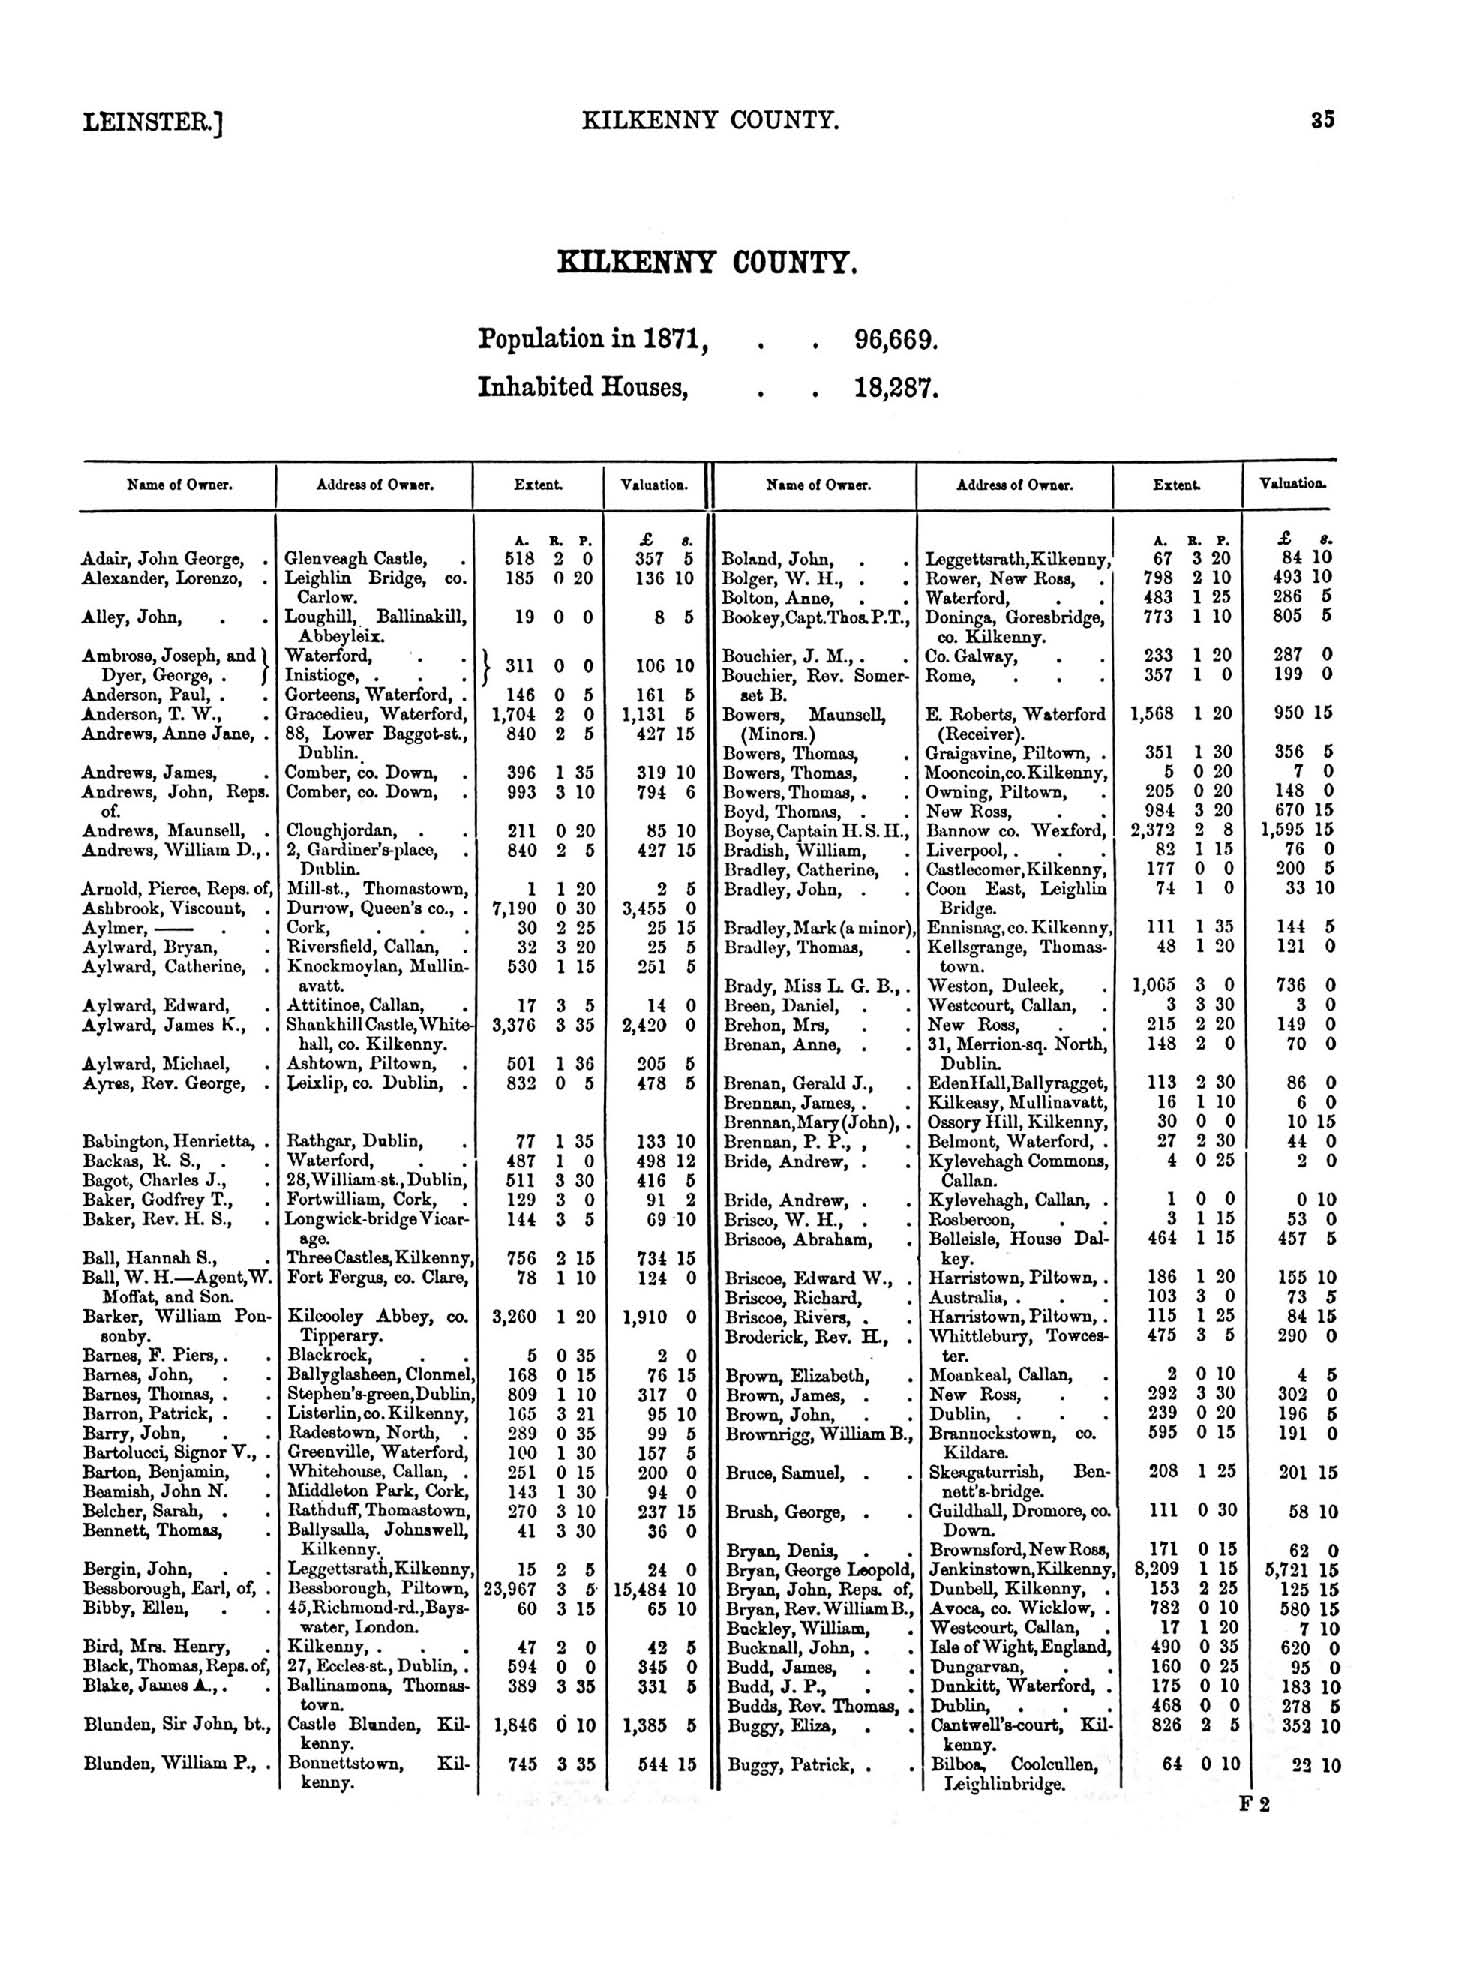 Return of Owners of Land, 1876 page 35 - click to open larger version in a new window